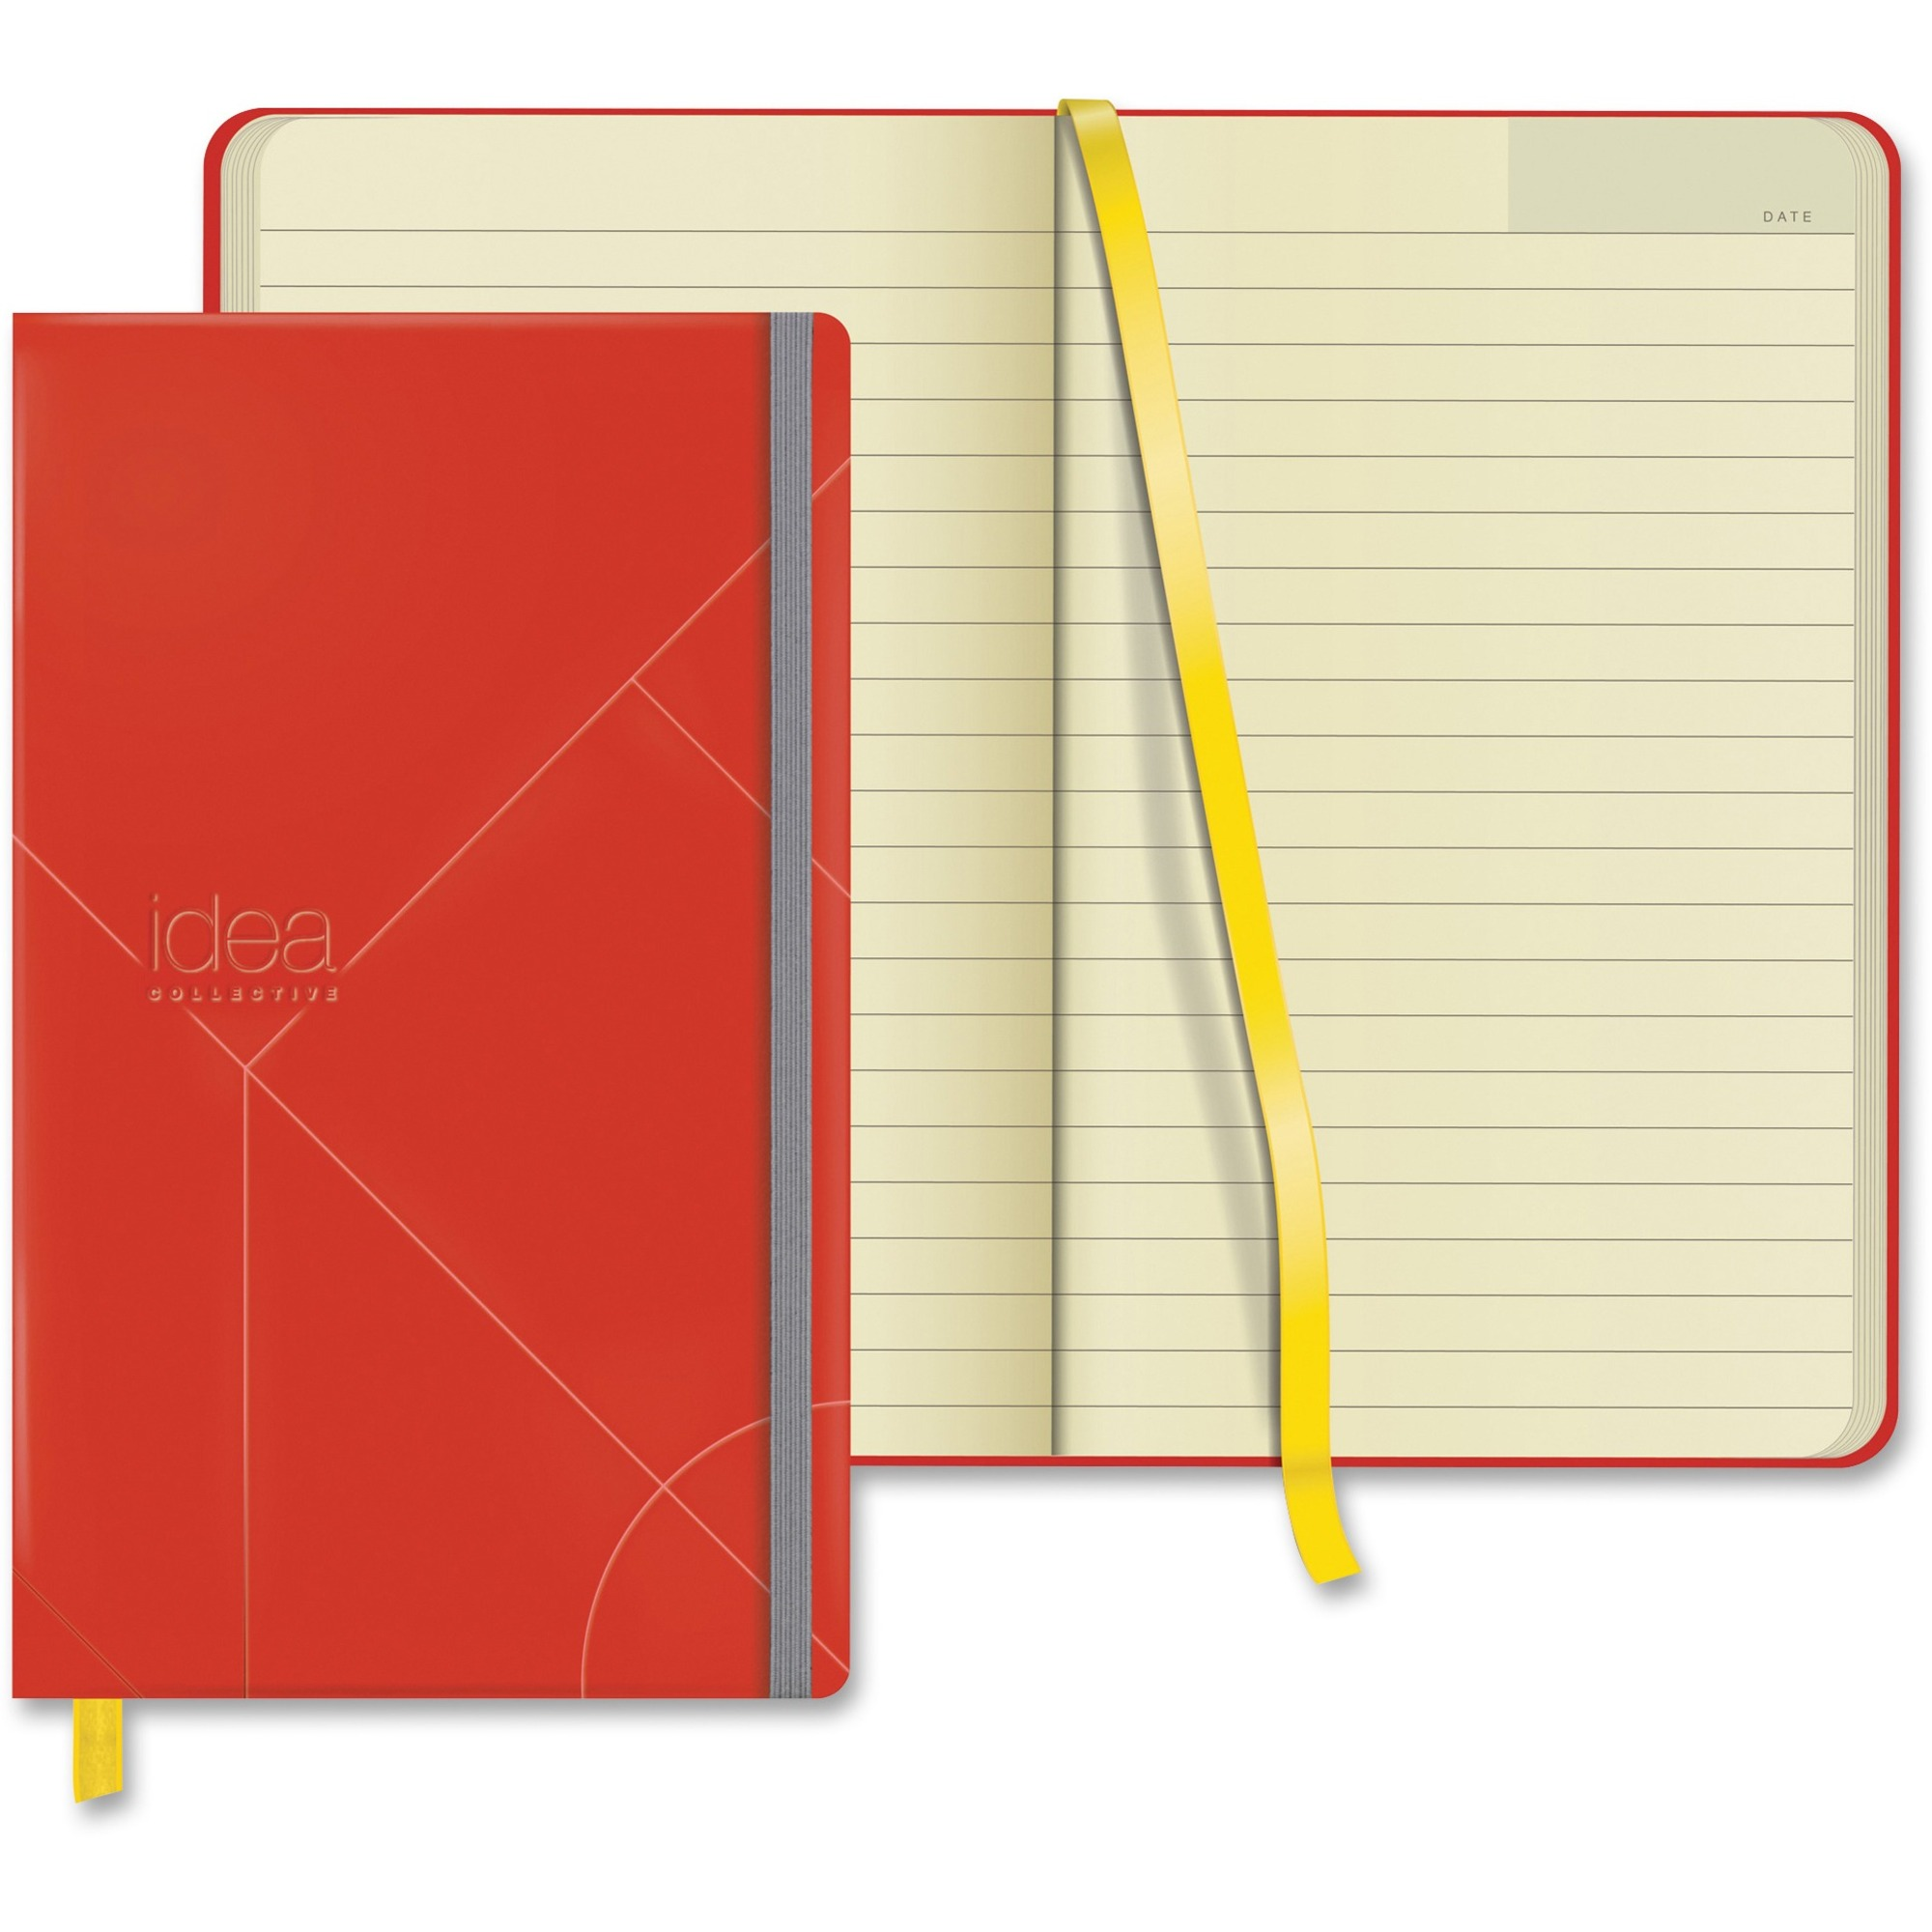 TOPS Idea Collective Medium Hardbound Journal, Red, 120 Sheet, 80 g Paper